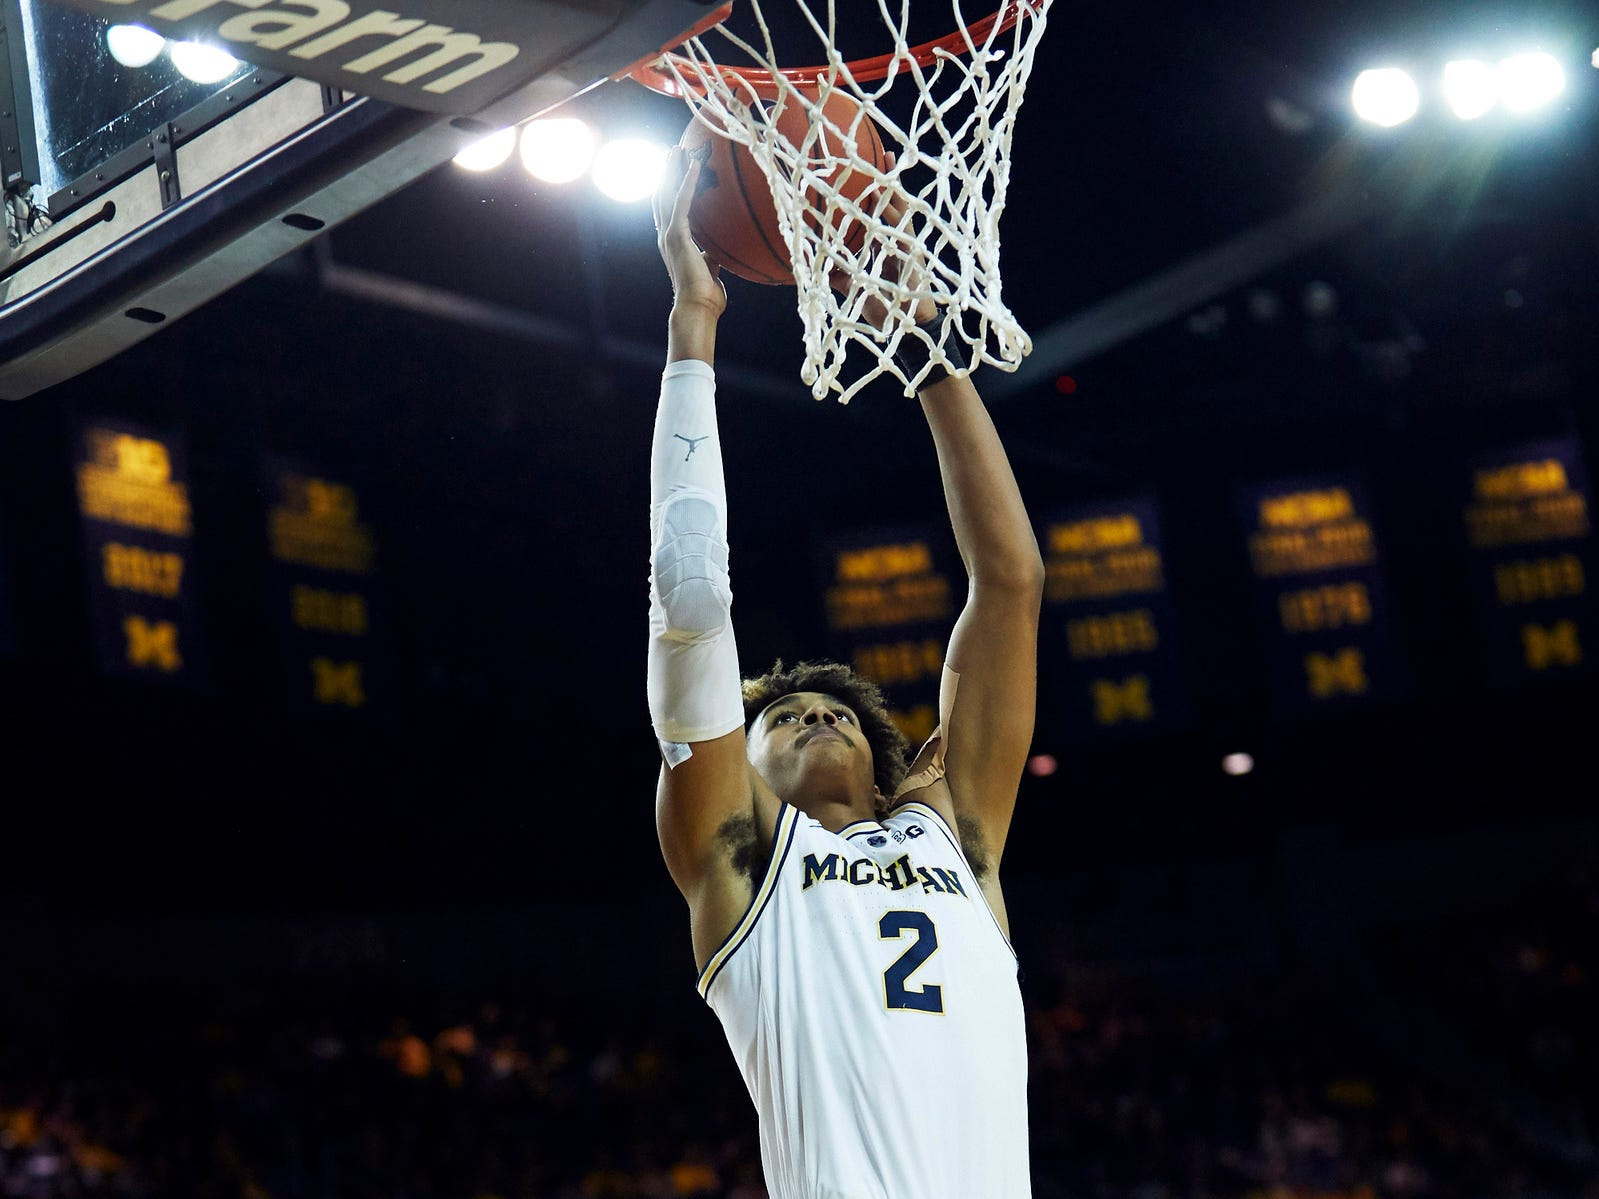 Michigan guard Jordan Poole dunks in the first half on Saturday, Dec. 15, 2018, at Crisler Center.